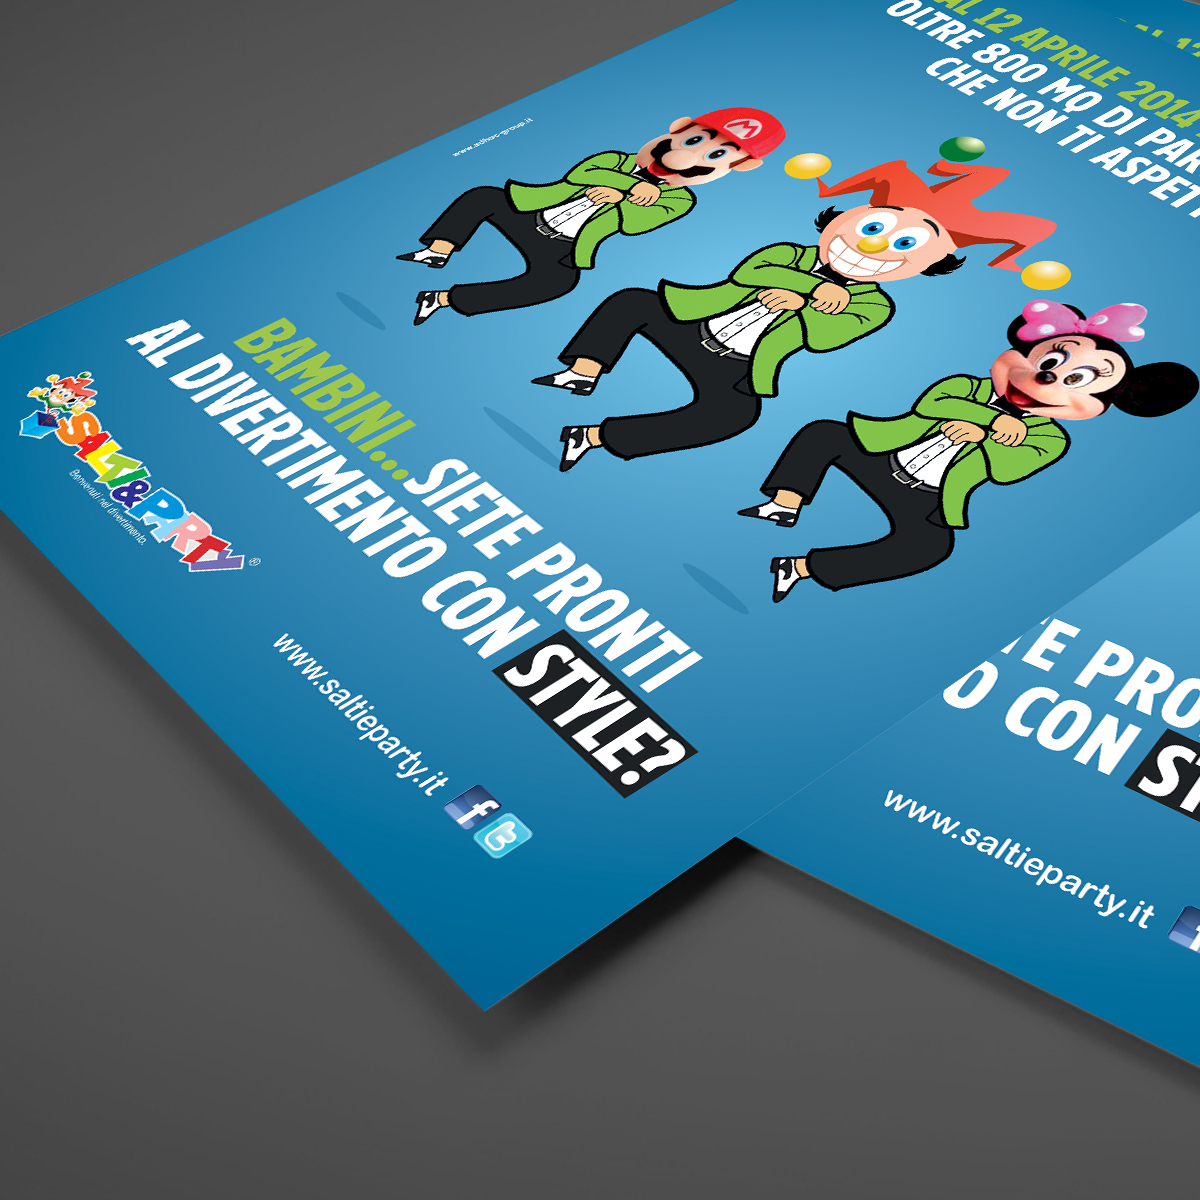 Flyer-Design-Mockup-Skitracer